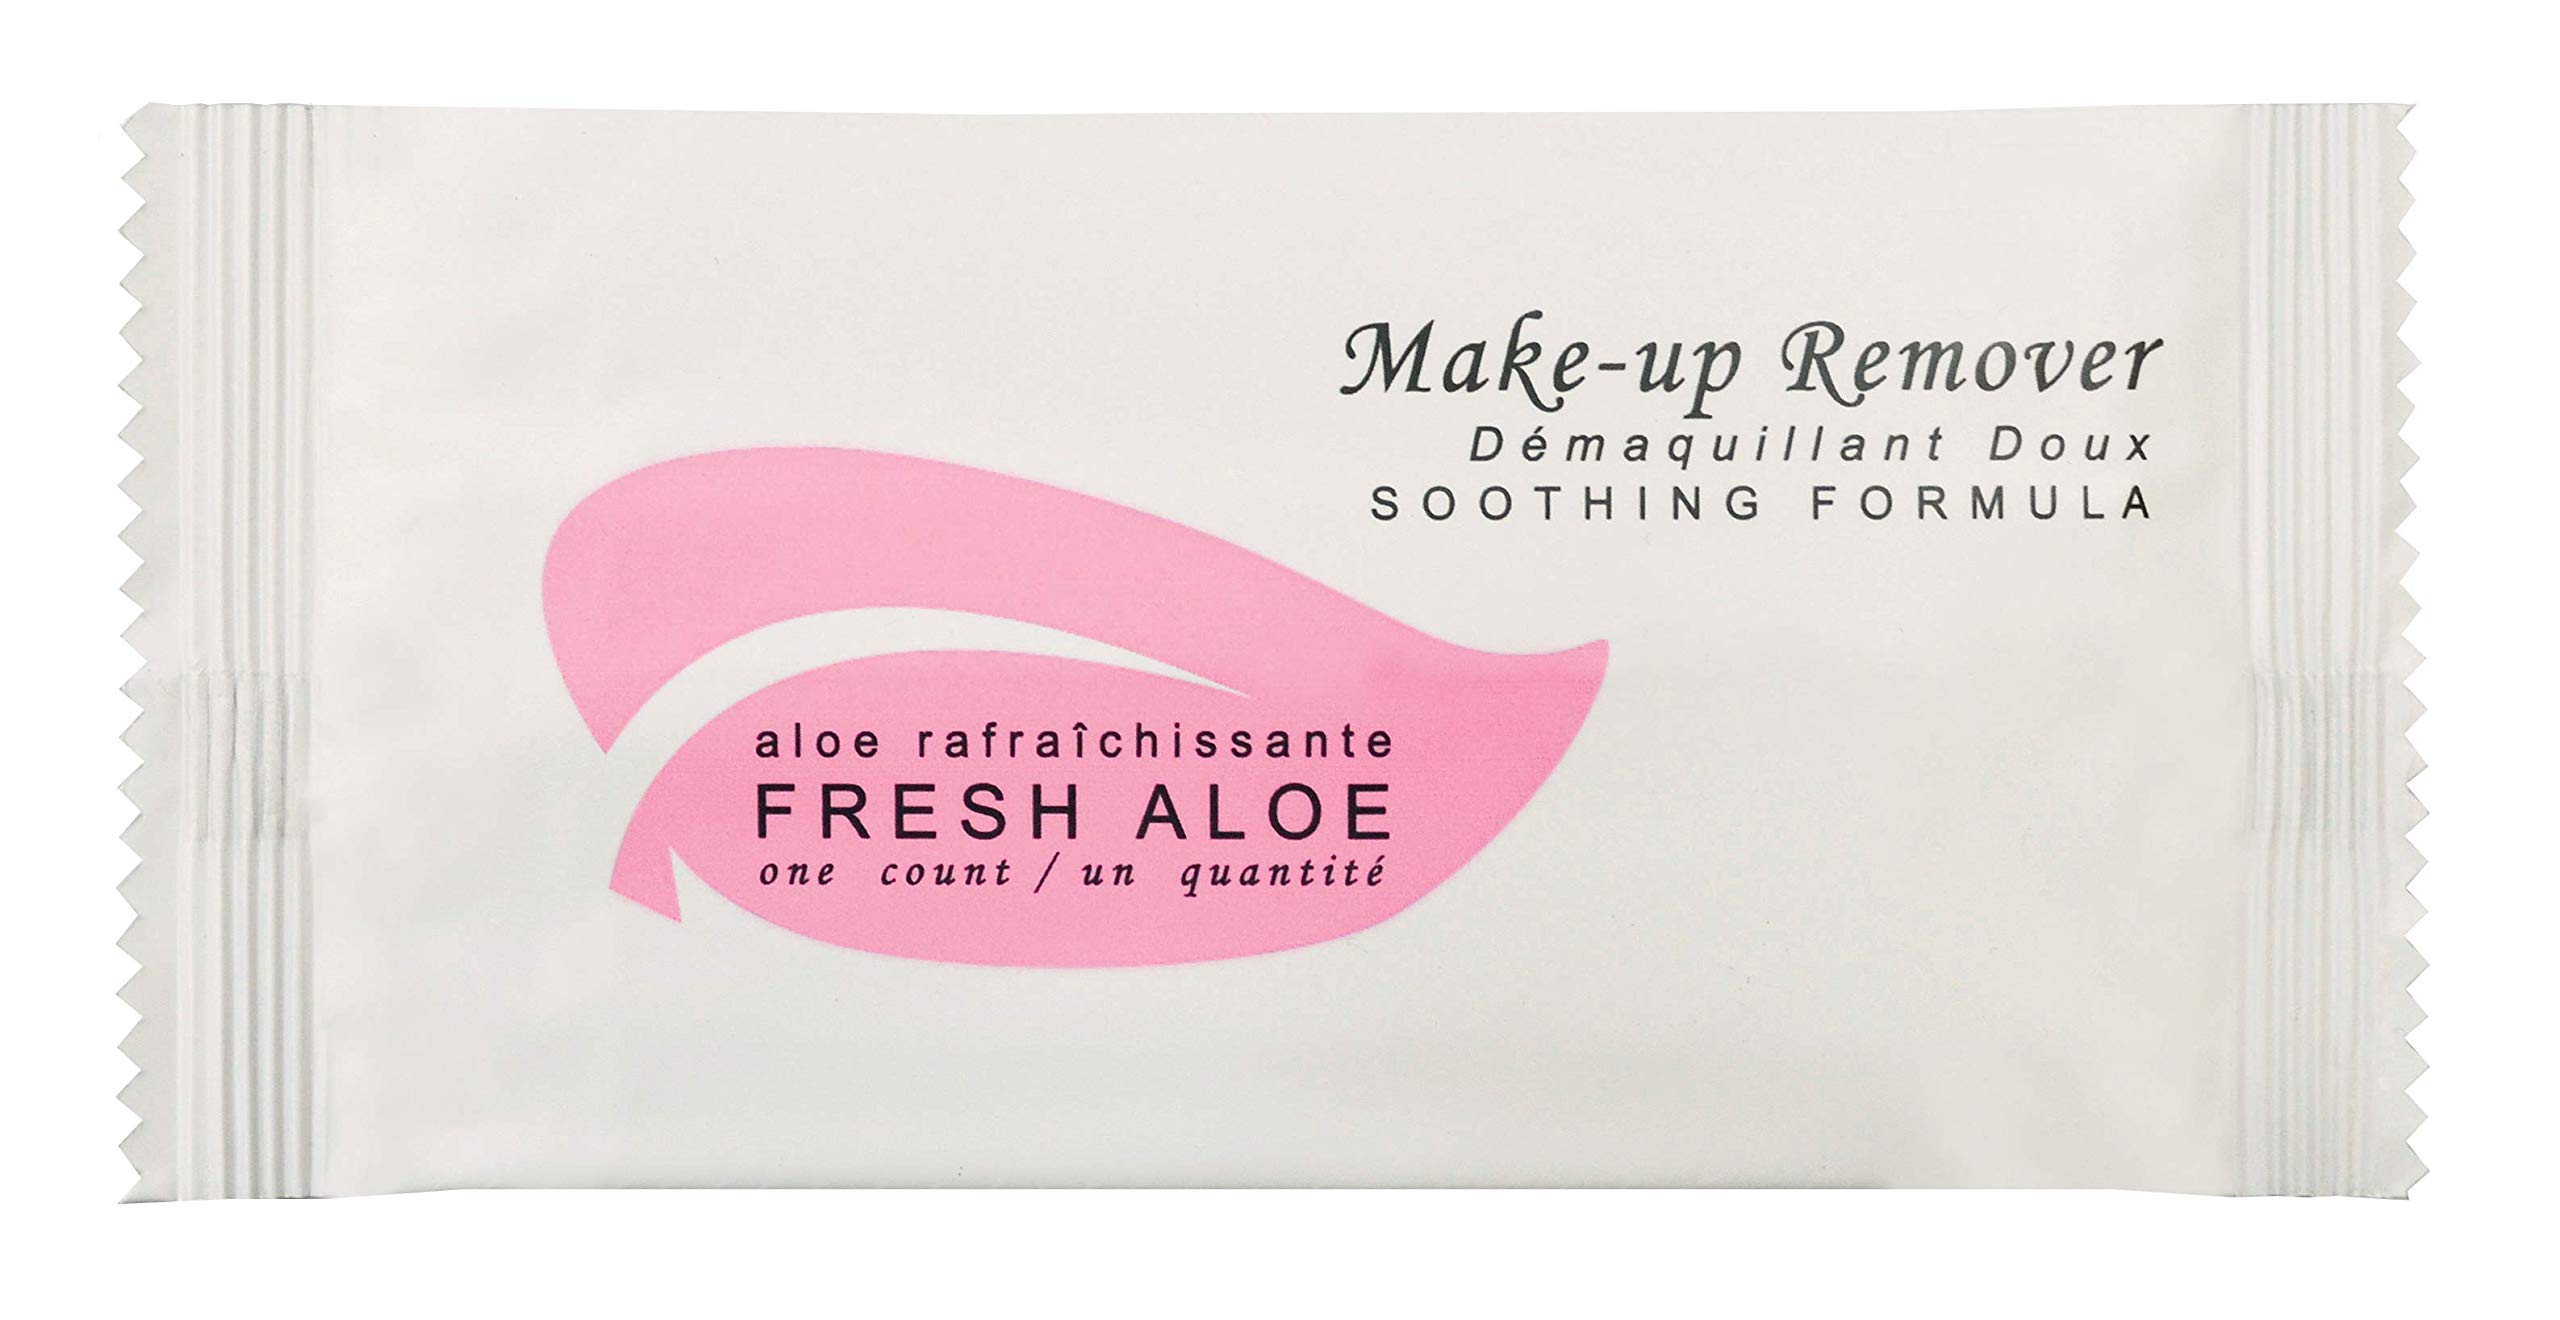 Fresh Aloe Make-up Remover Wipe (Case of 500)- Air BnB, VRBO, Vacation Rental by Diversified Hospitality